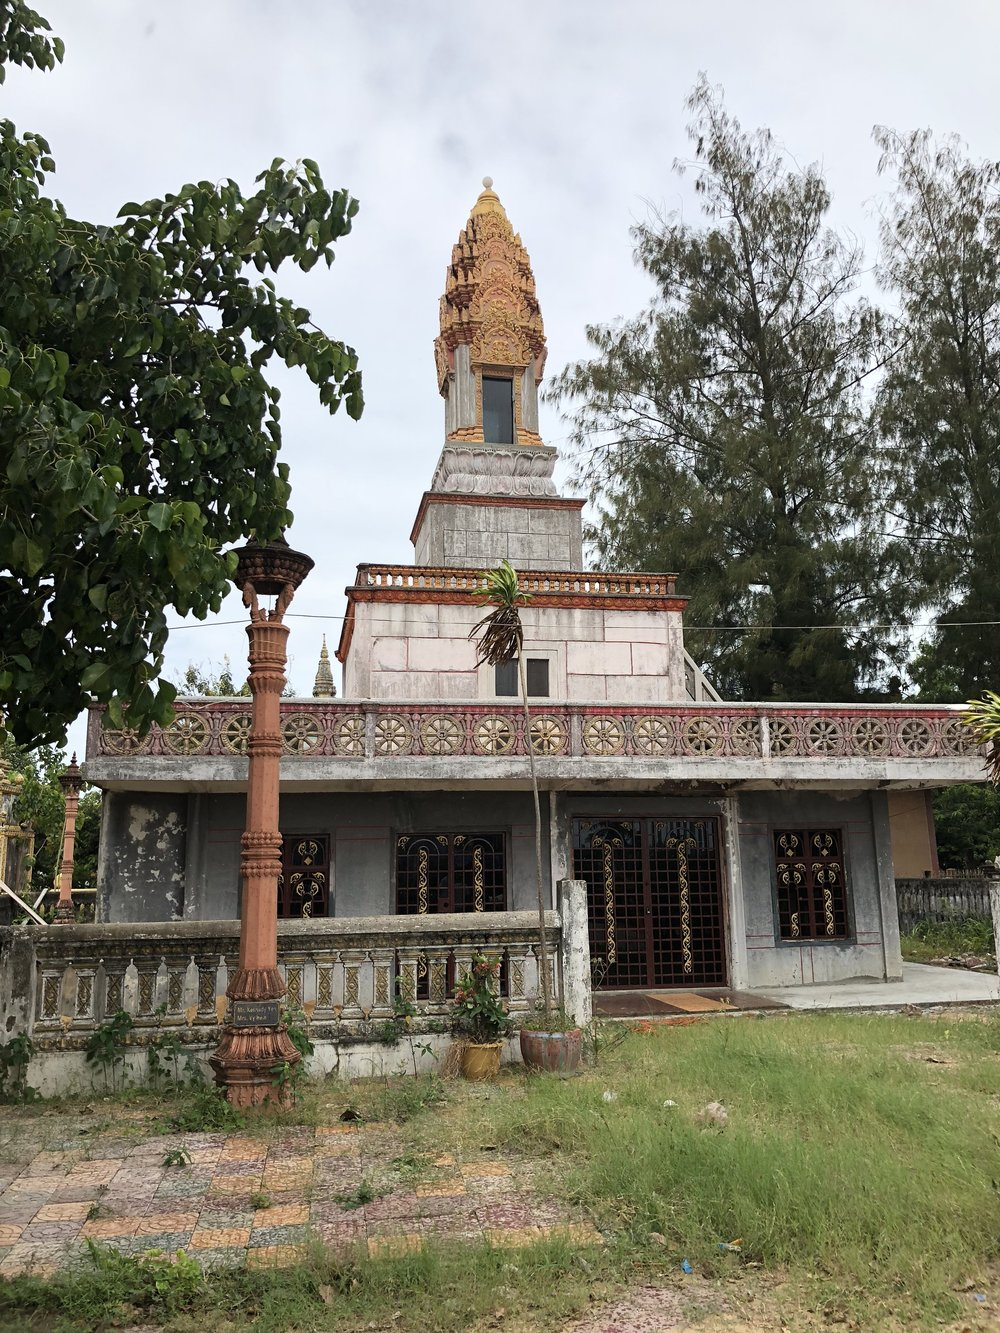 65 phnom penh chedi built by king sihanouk wat nguon pich 2018.jpg